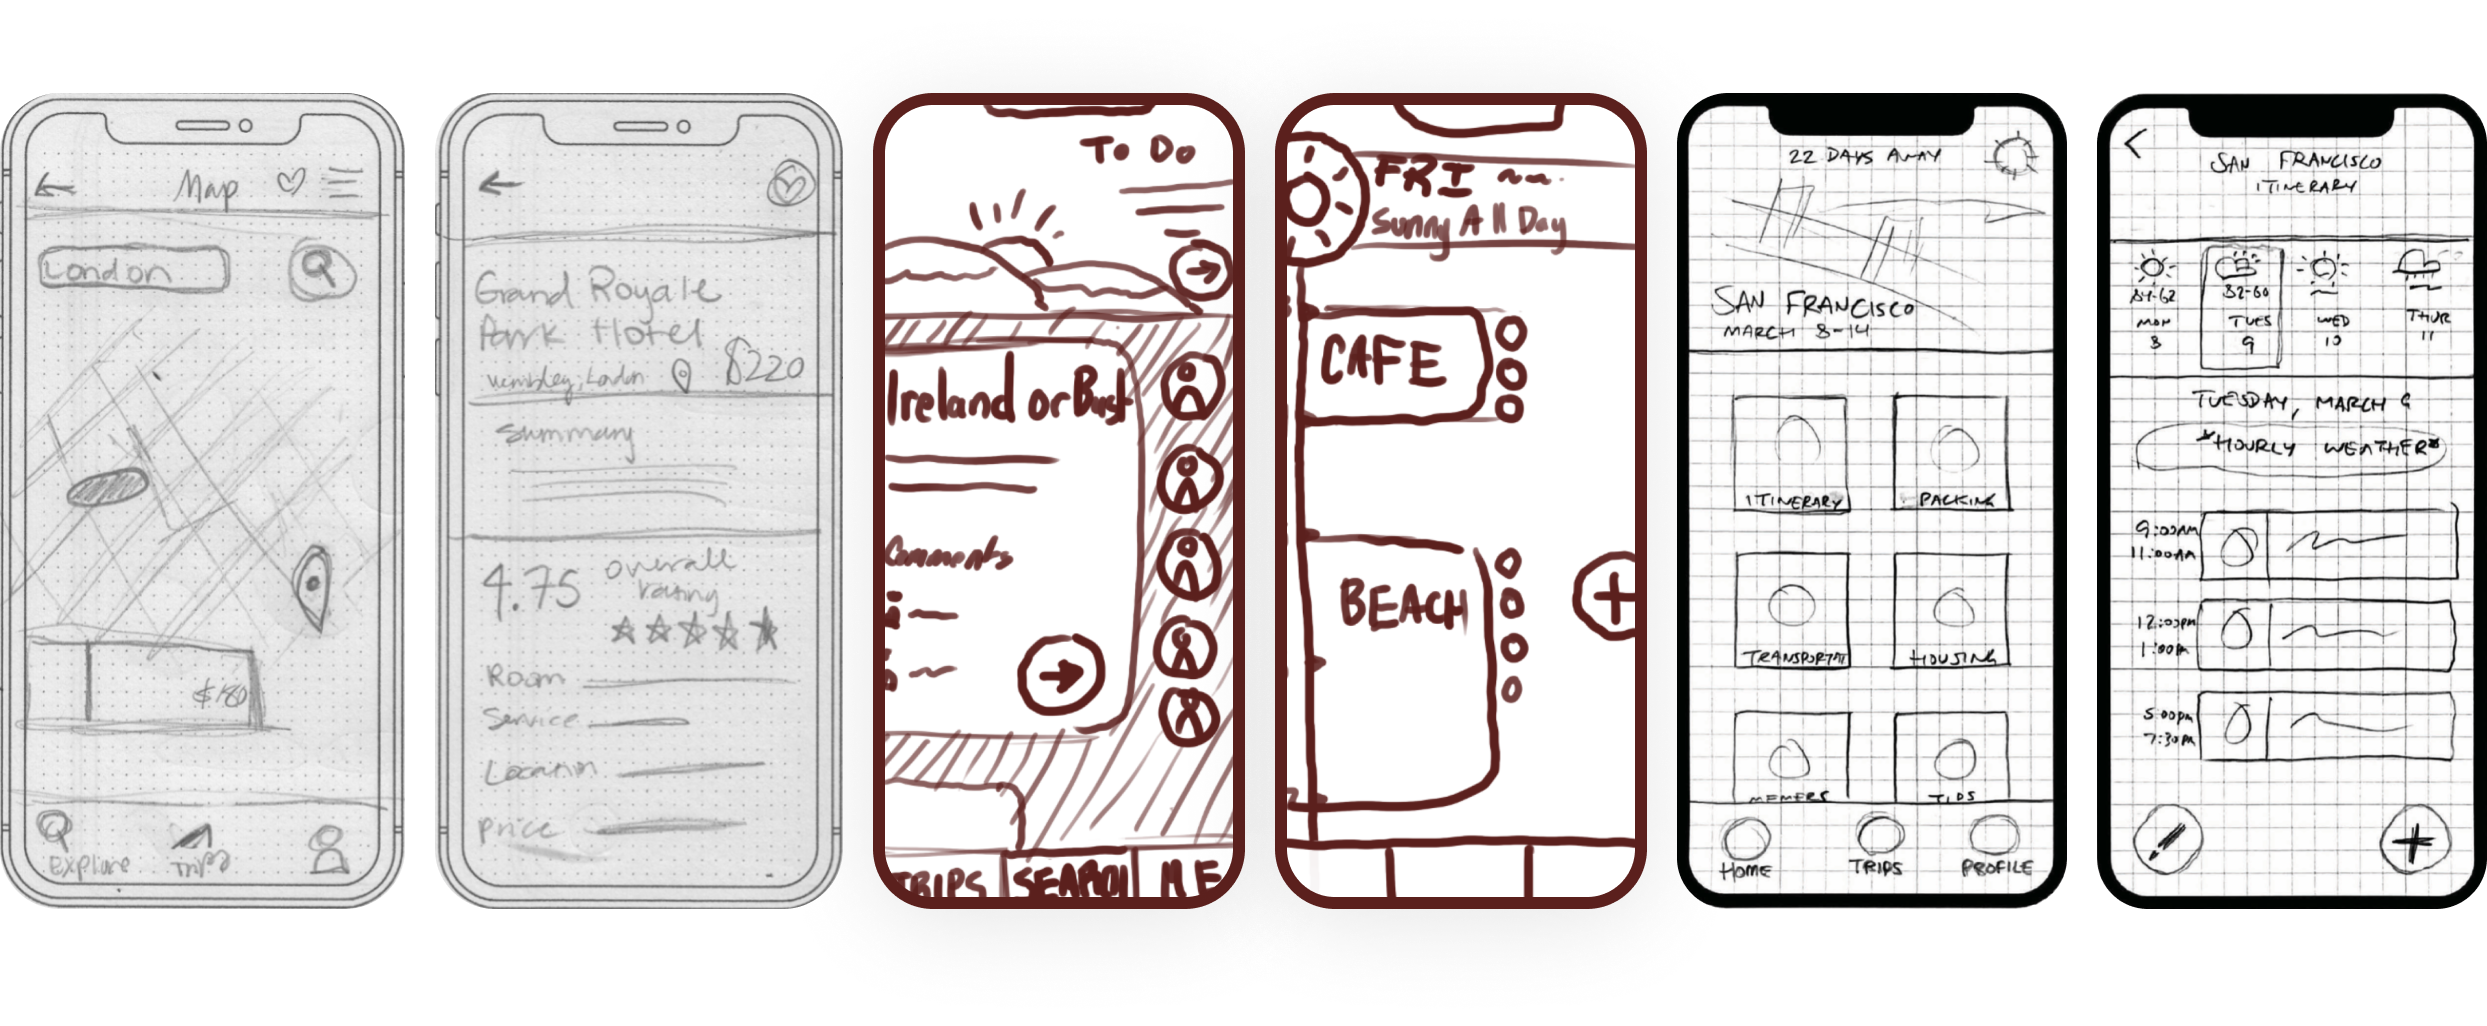 Wireframe sketches in different styles